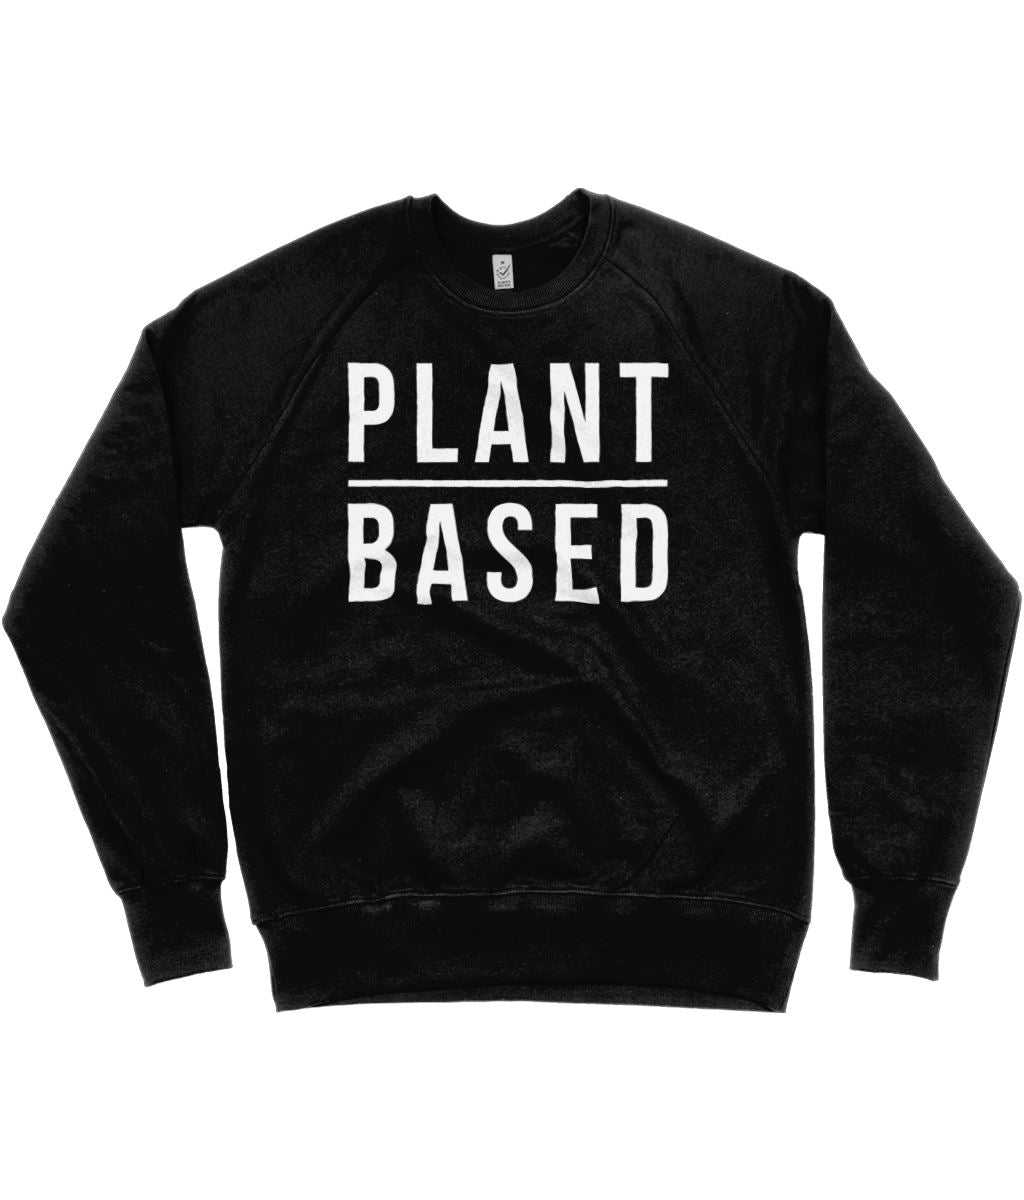 """Plant Based"" Vegan Sweatshirt - 100% Organic Cotton (Unisex) Clothing Vegan Original Black Small"